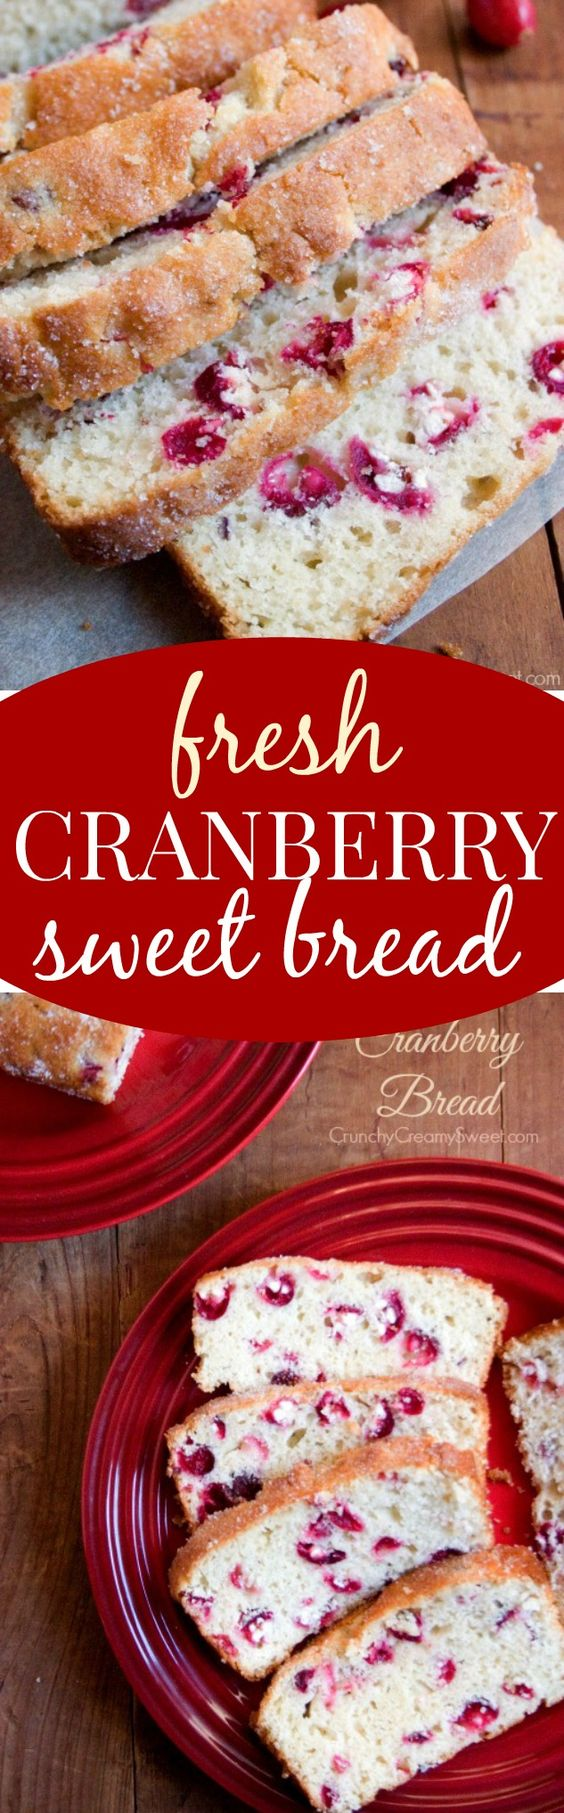 Cranberry Bread Recipe-12/13/15 Great recipe that doesn't call for orange juice…